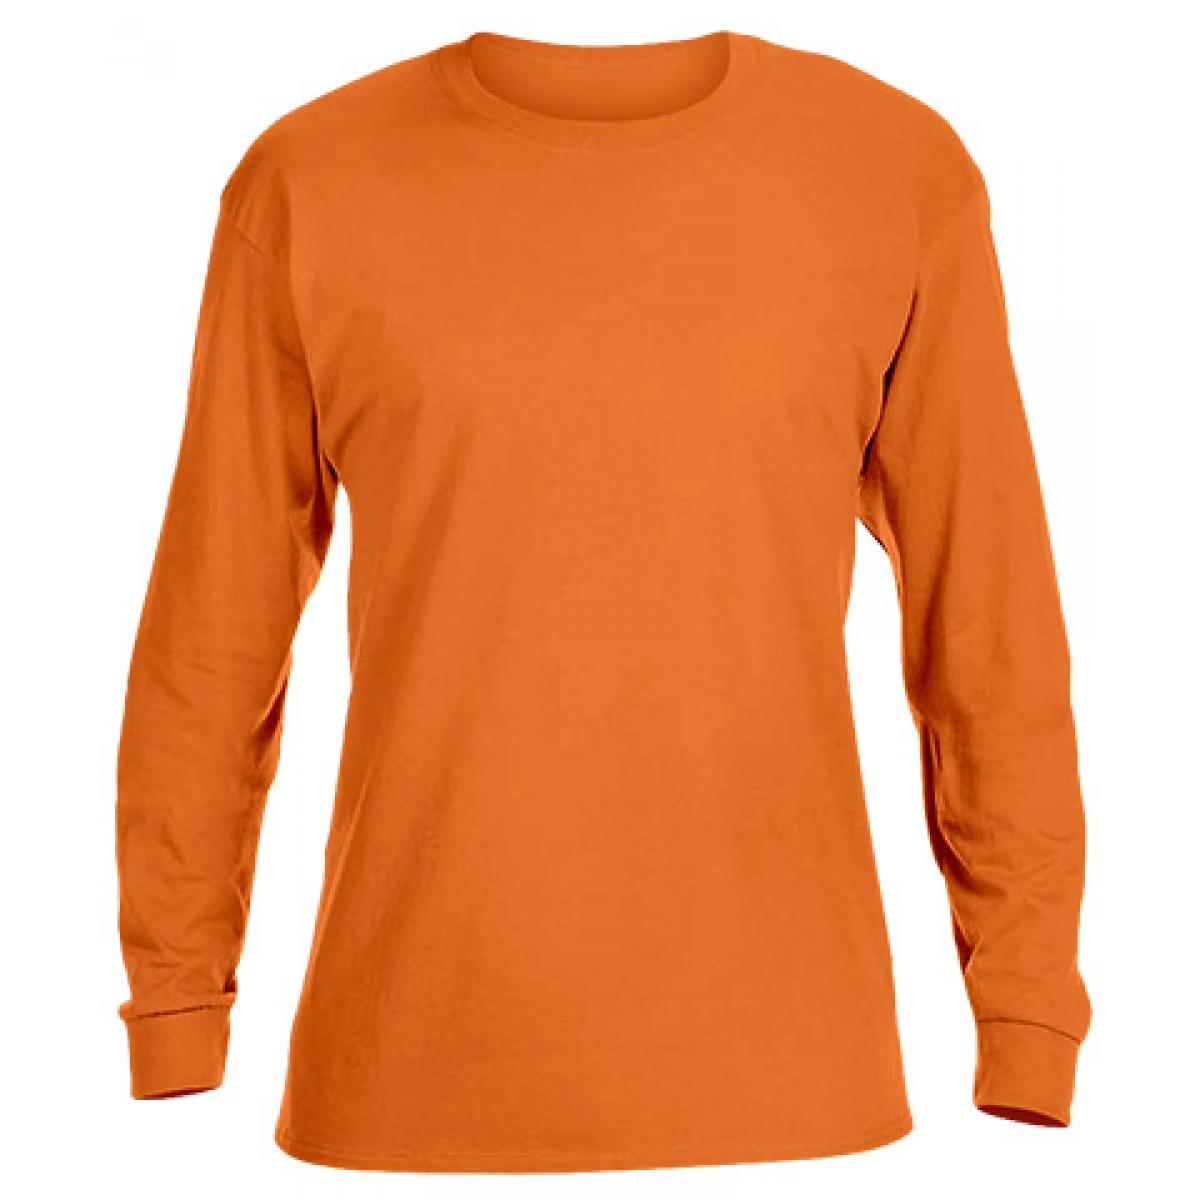 Basic Long Sleeve Crew Neck -Orange-YL